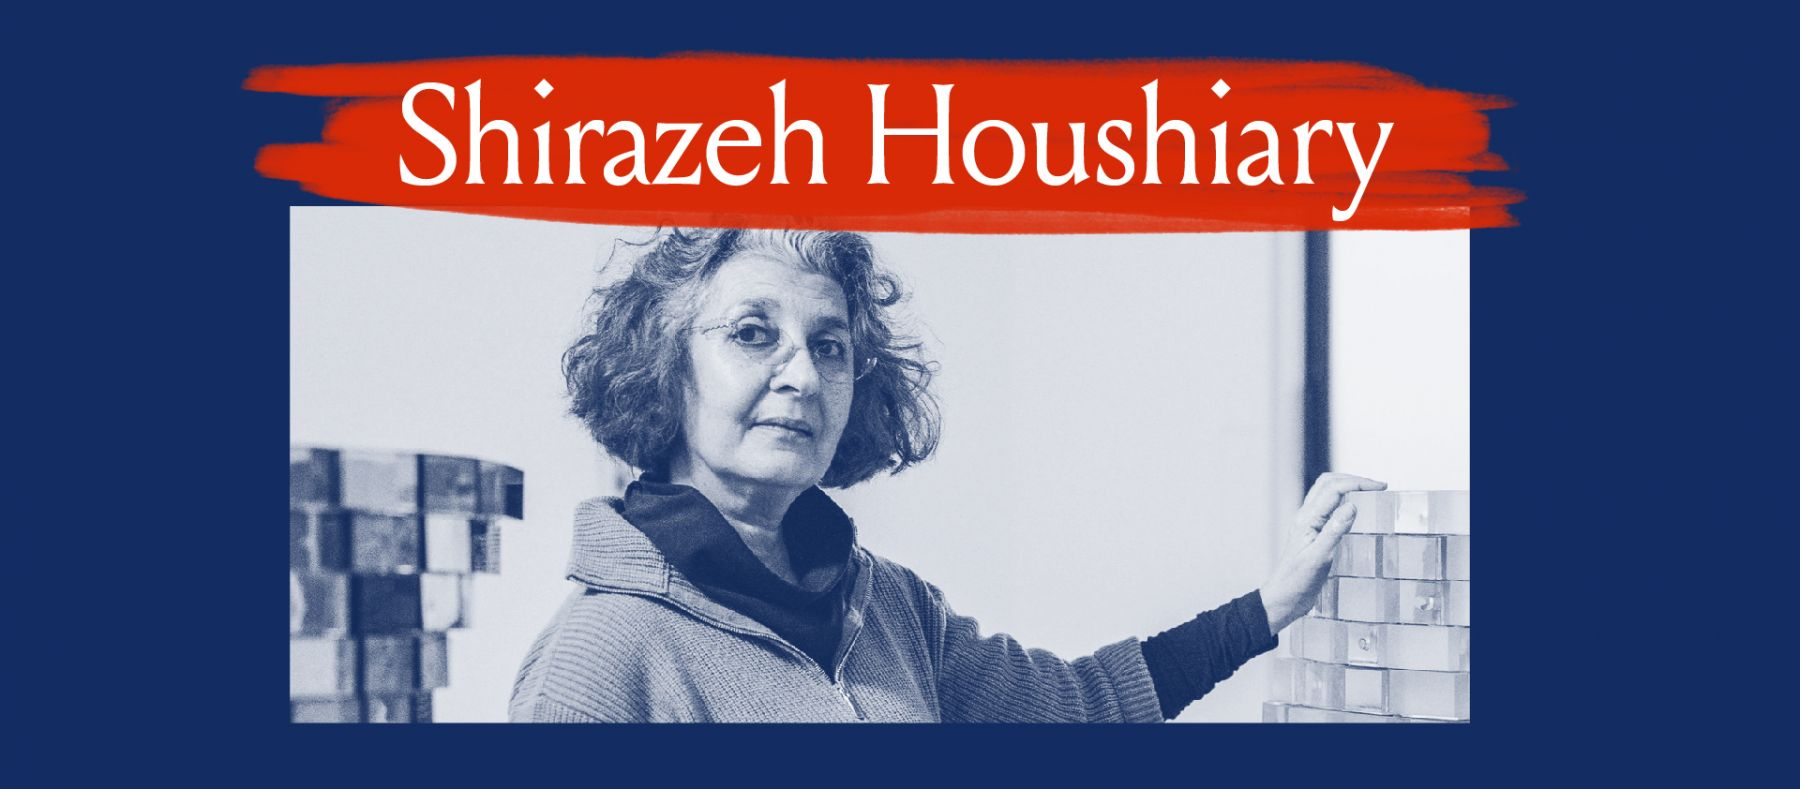 Shirazeh Houshiary Portrait Banner